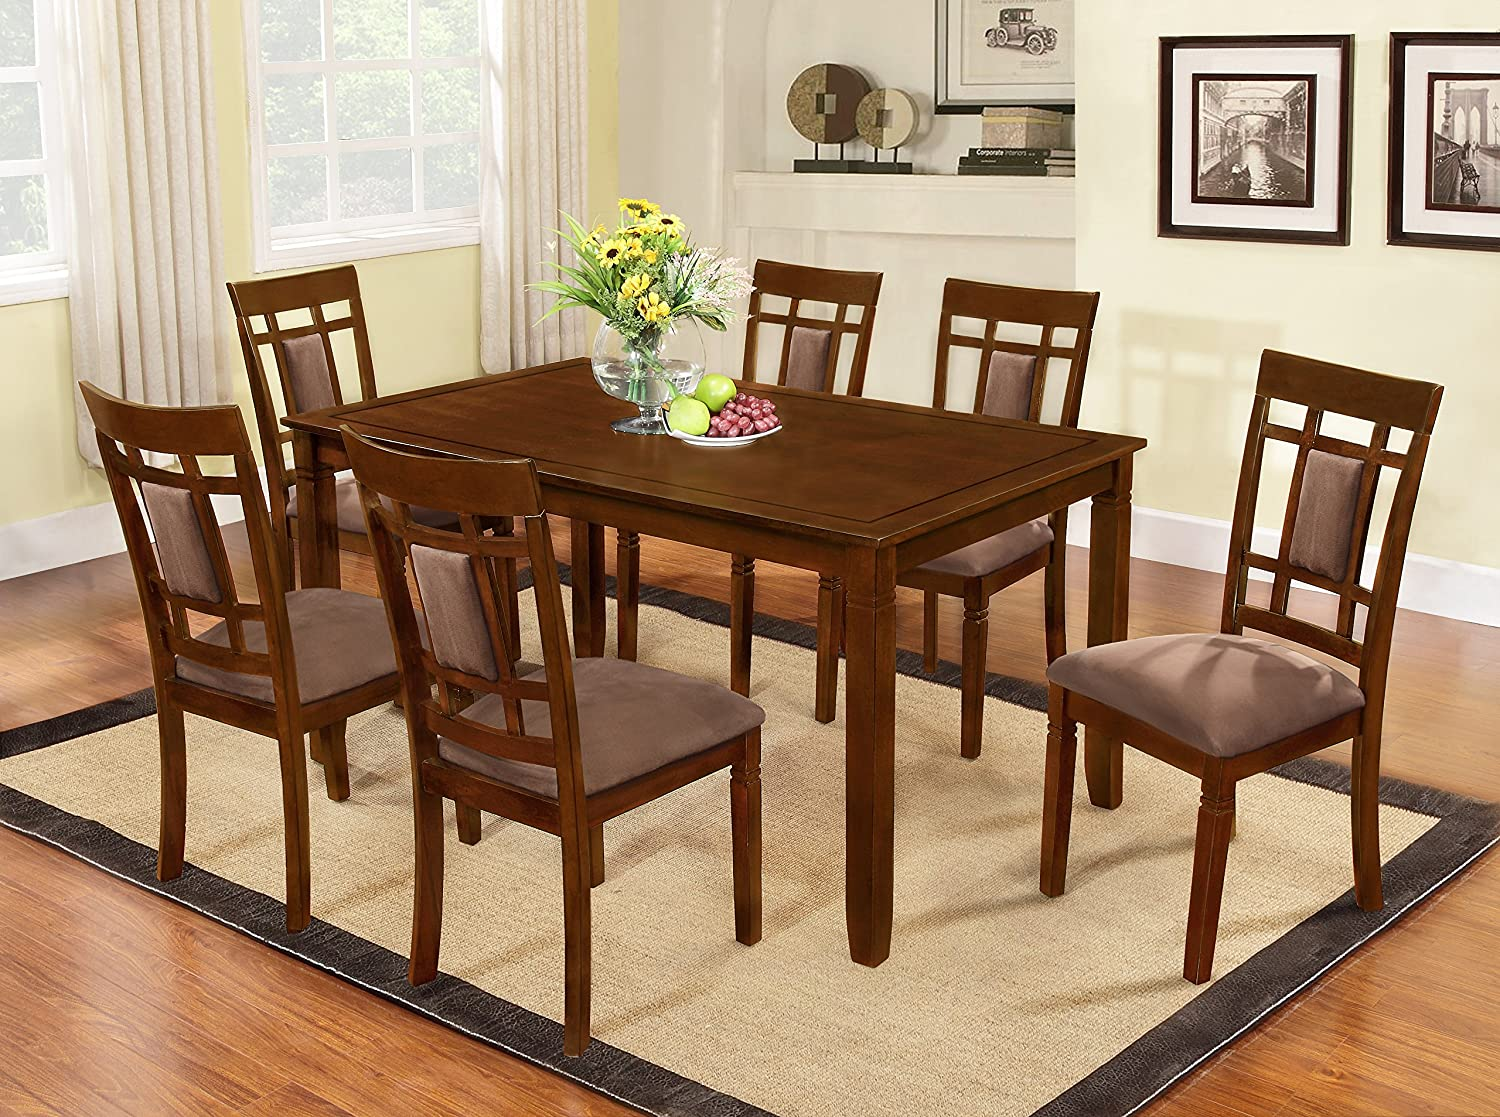 Genial Amazon.com   The Room Style 7 Piece Cherry Finish Solid Wood Dining Table  Set   Table U0026 Chair Sets